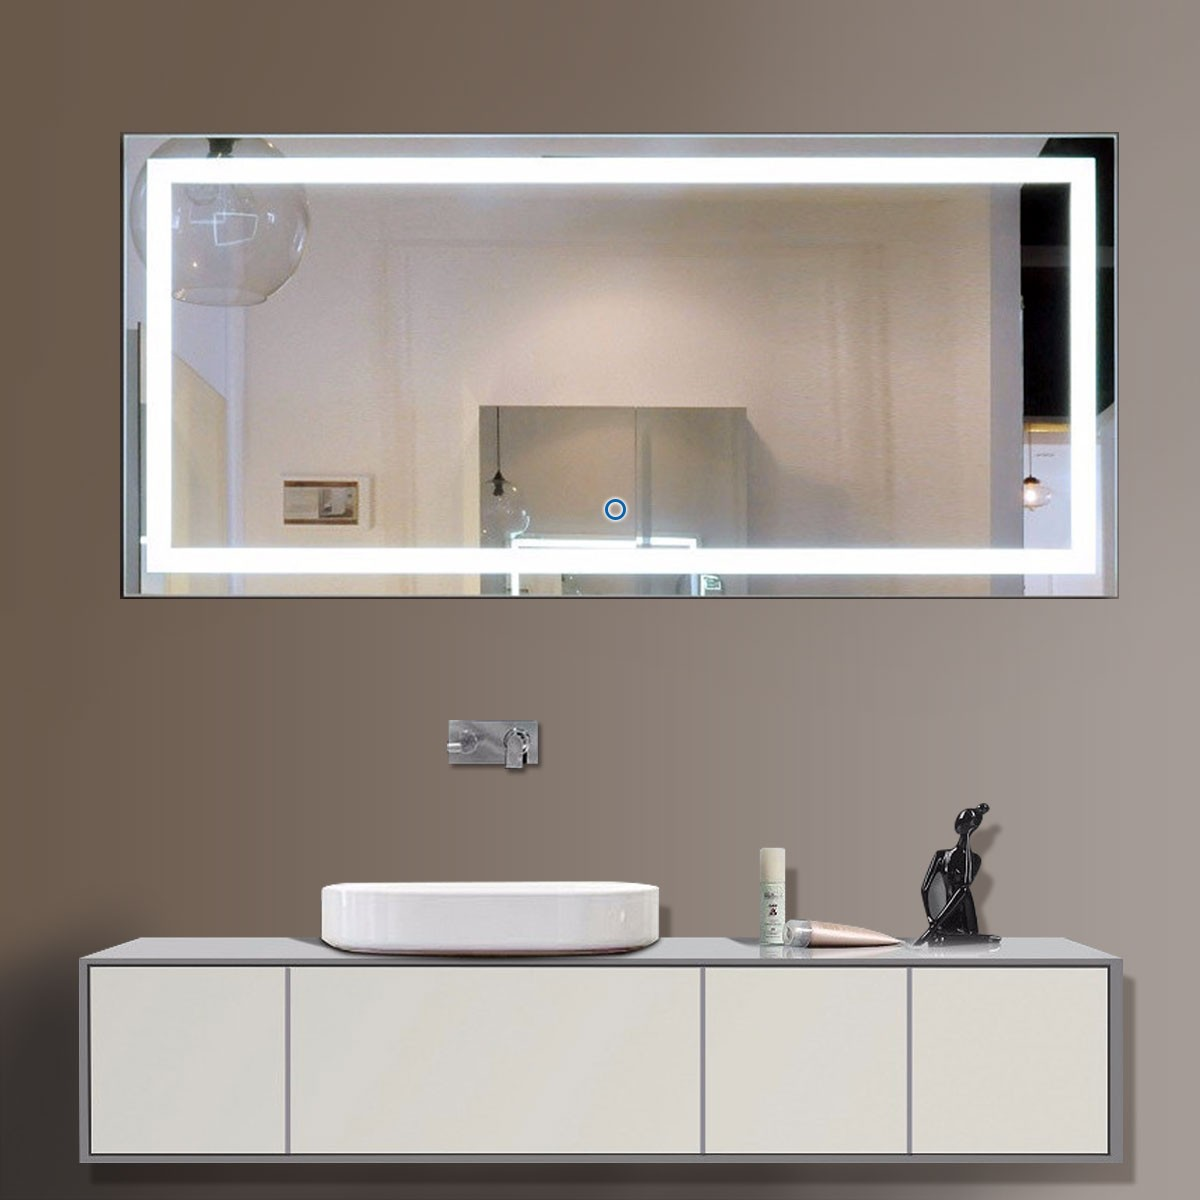 60 x 28 In. Horizontal LED Mirror, Touch Button (DK-OD-CK010-C)